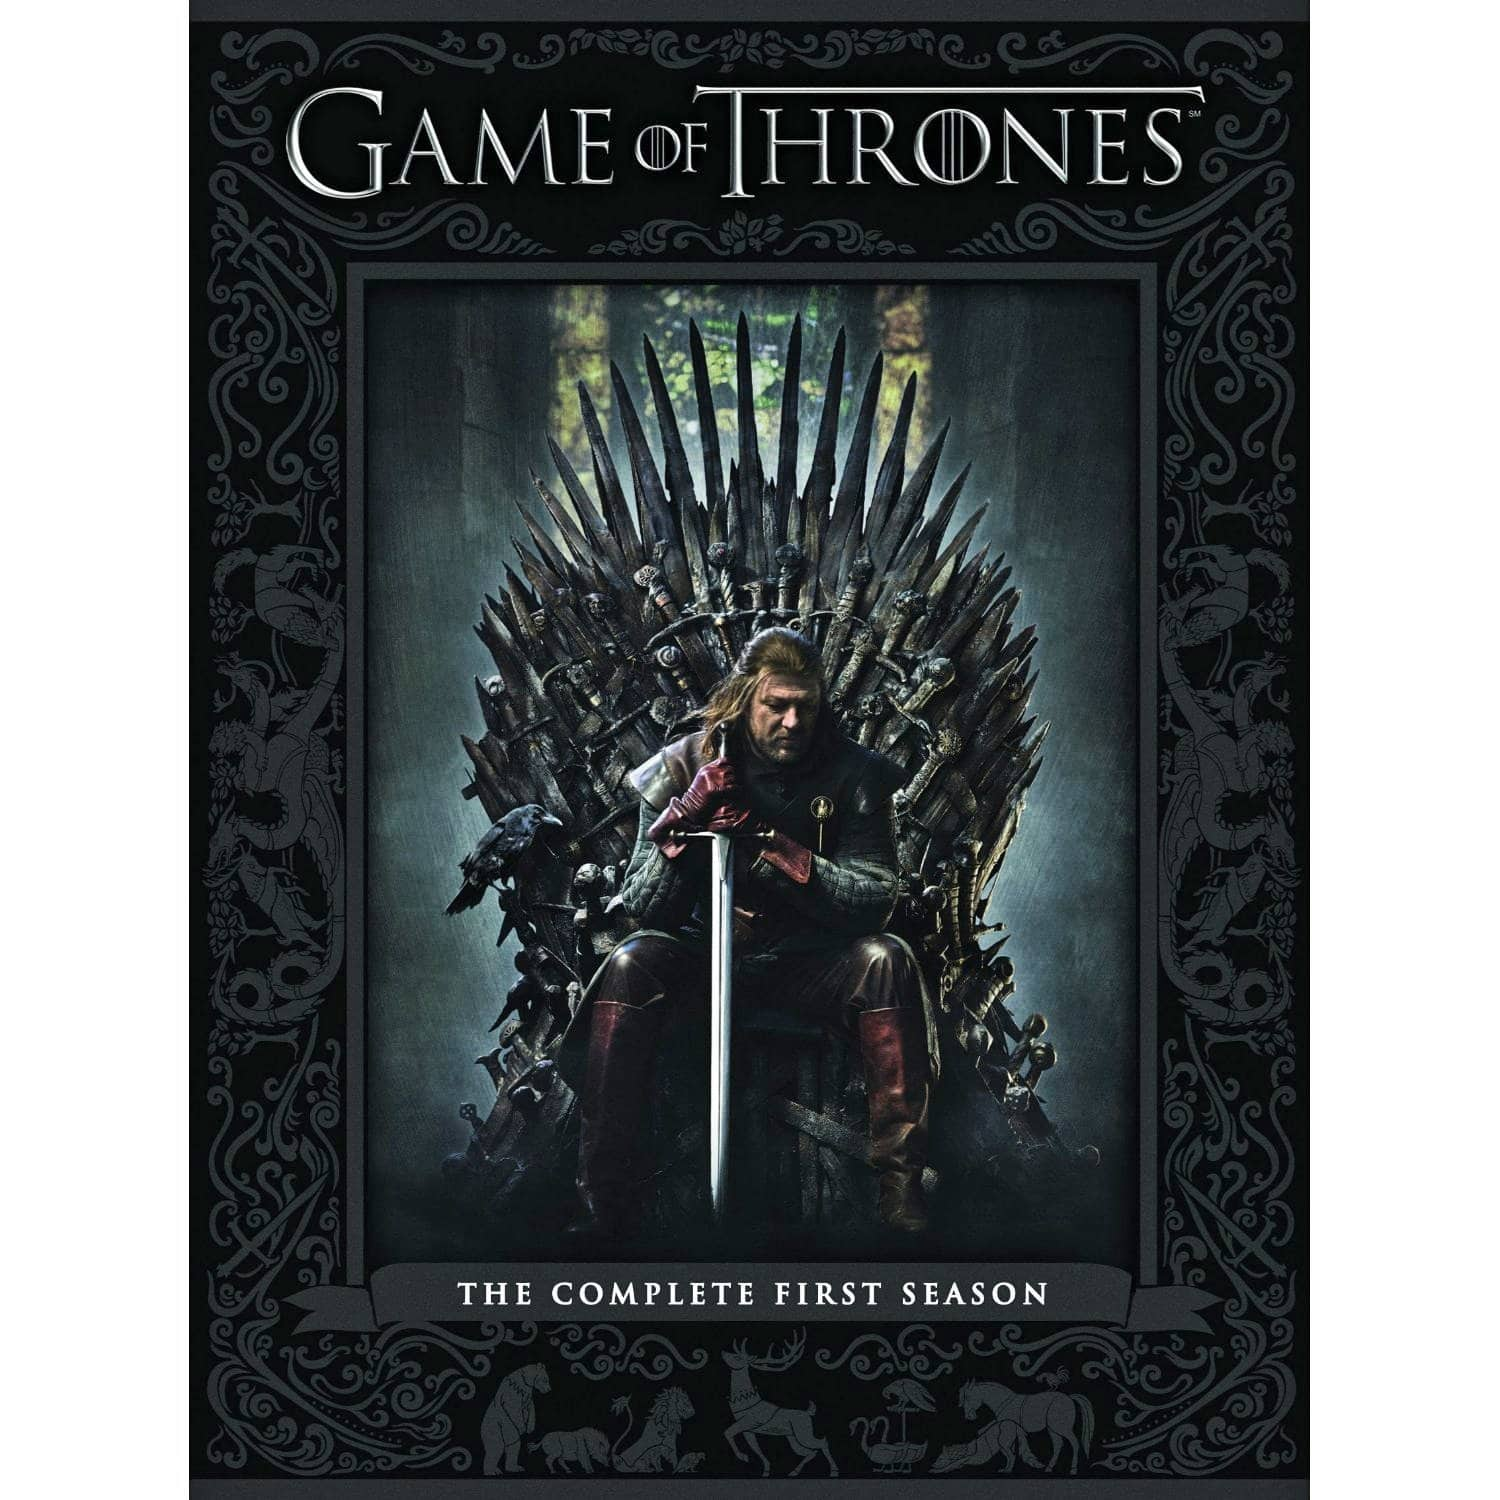 New DVDs: Game of Thrones, Big Bang Theory & More  2 for $14 + Shipping